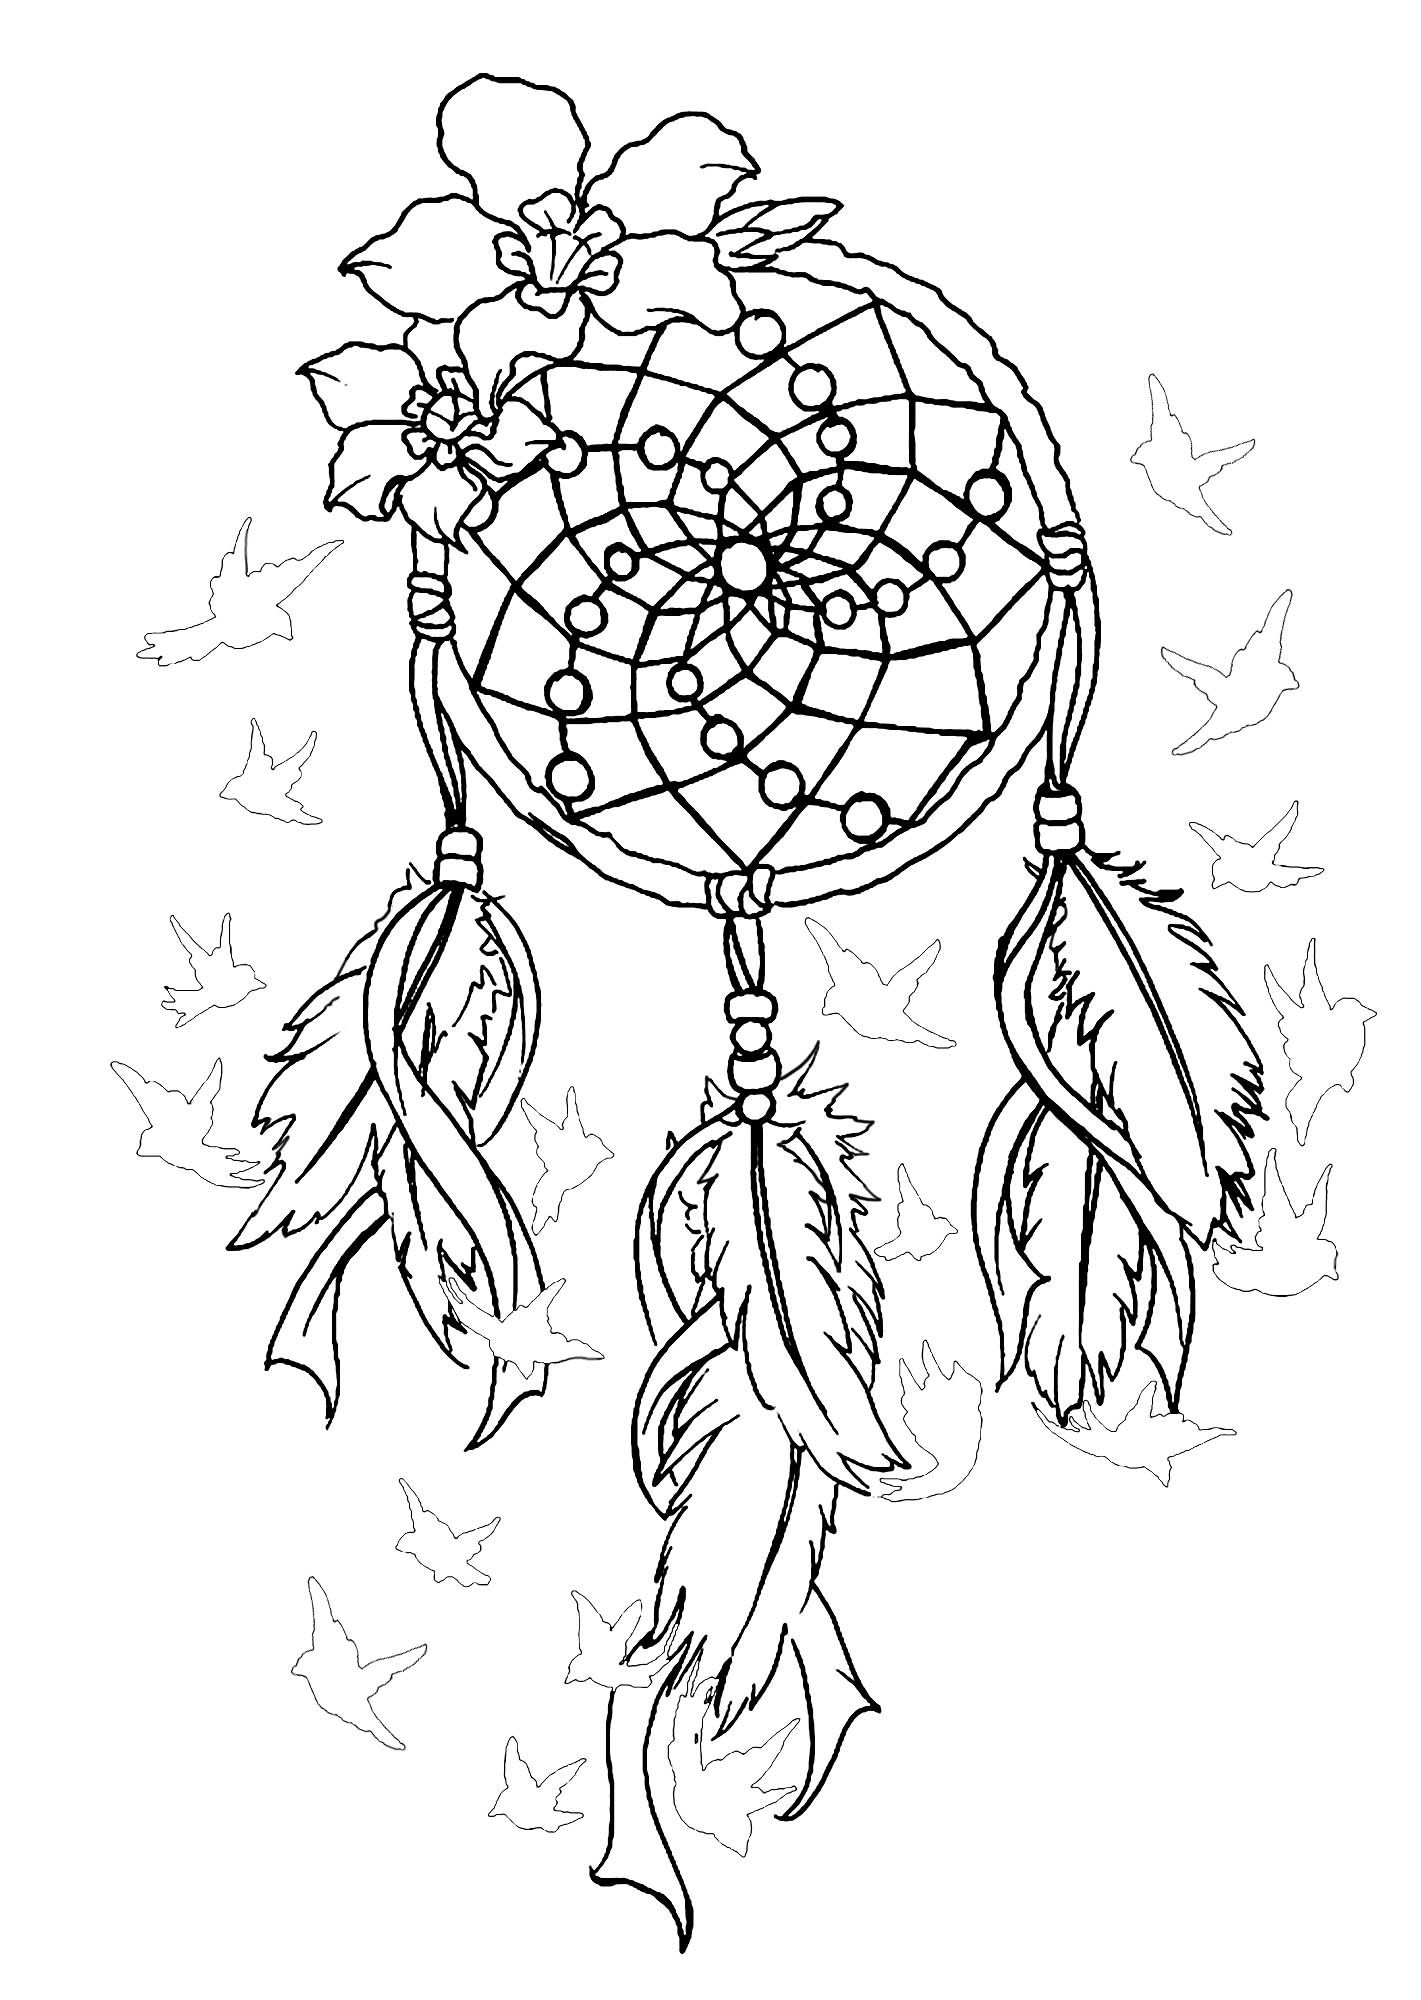 Dreamcatcher to print 2 zen and anti stress coloring Zen coloring book for adults